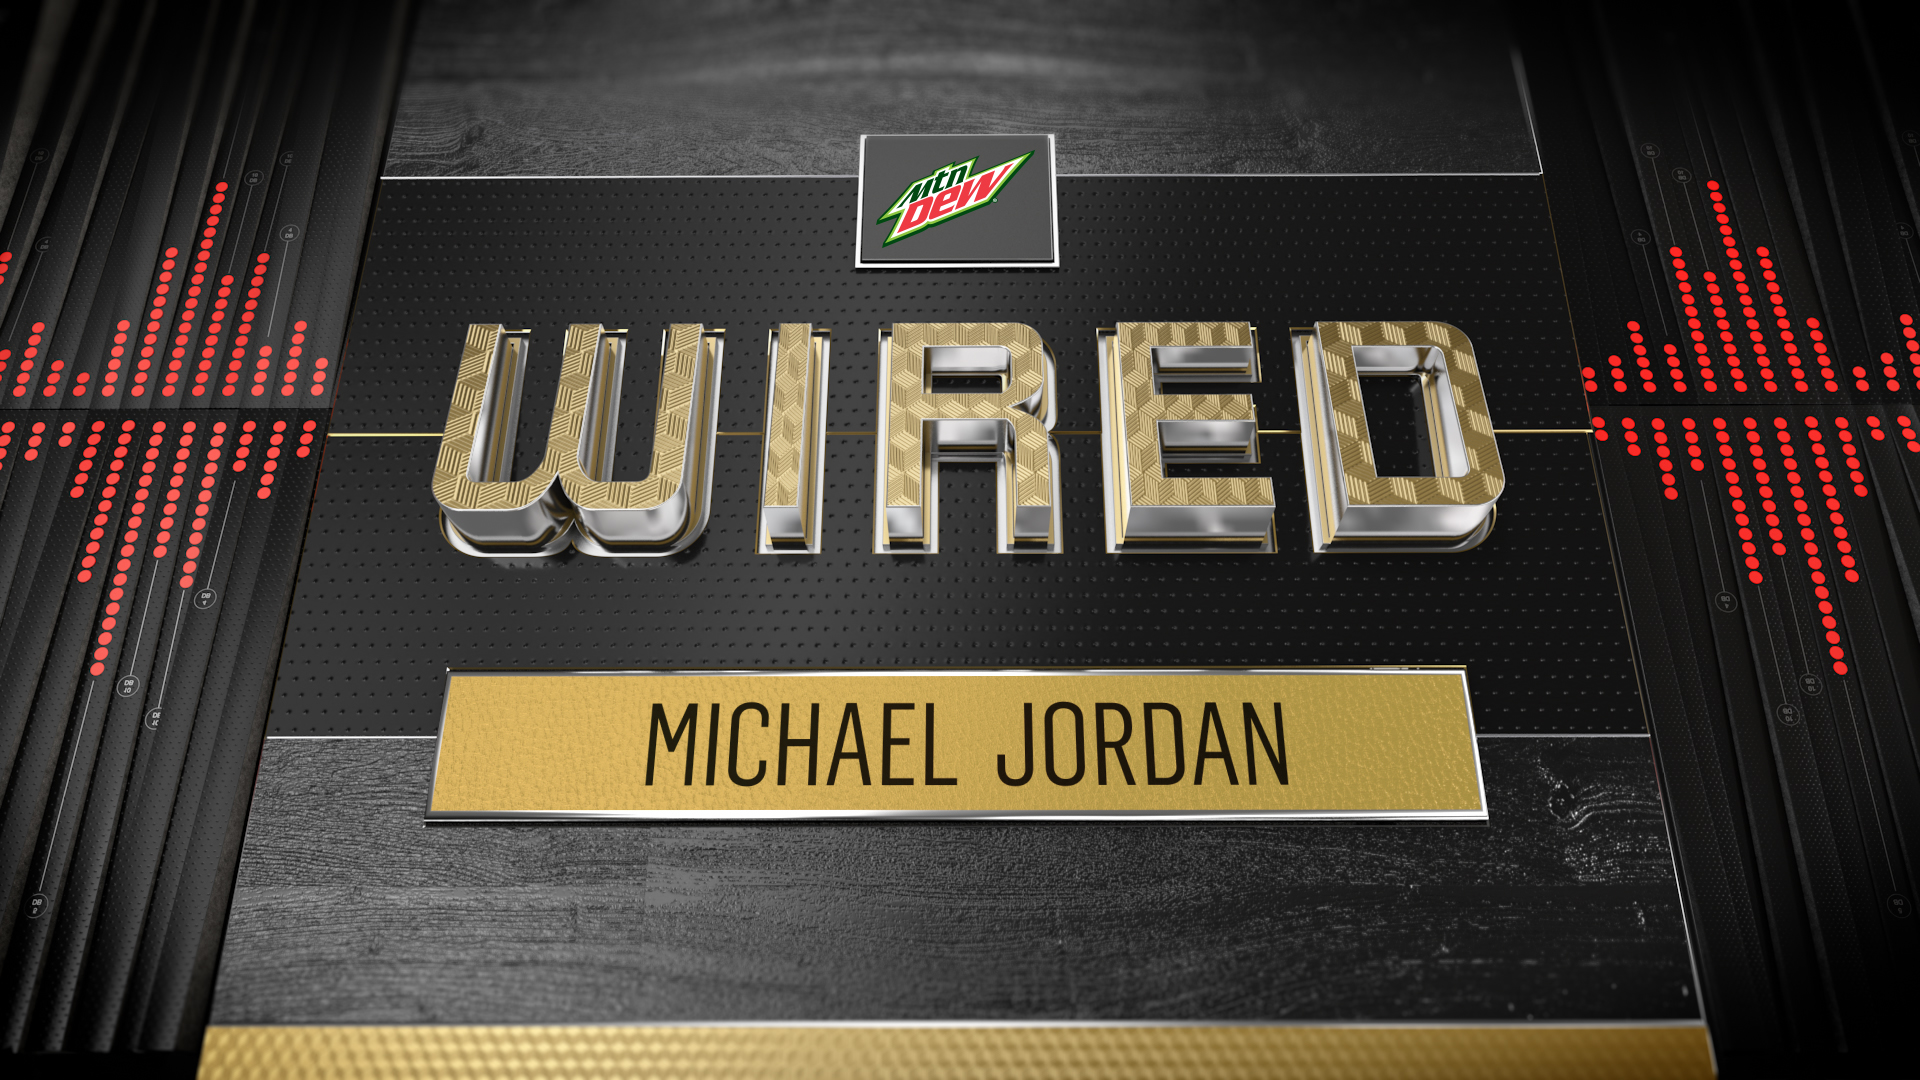 170707_NBA_VIZ_WIRED_FRONT_END_SPONSOR_V001_MJ_3.jpg